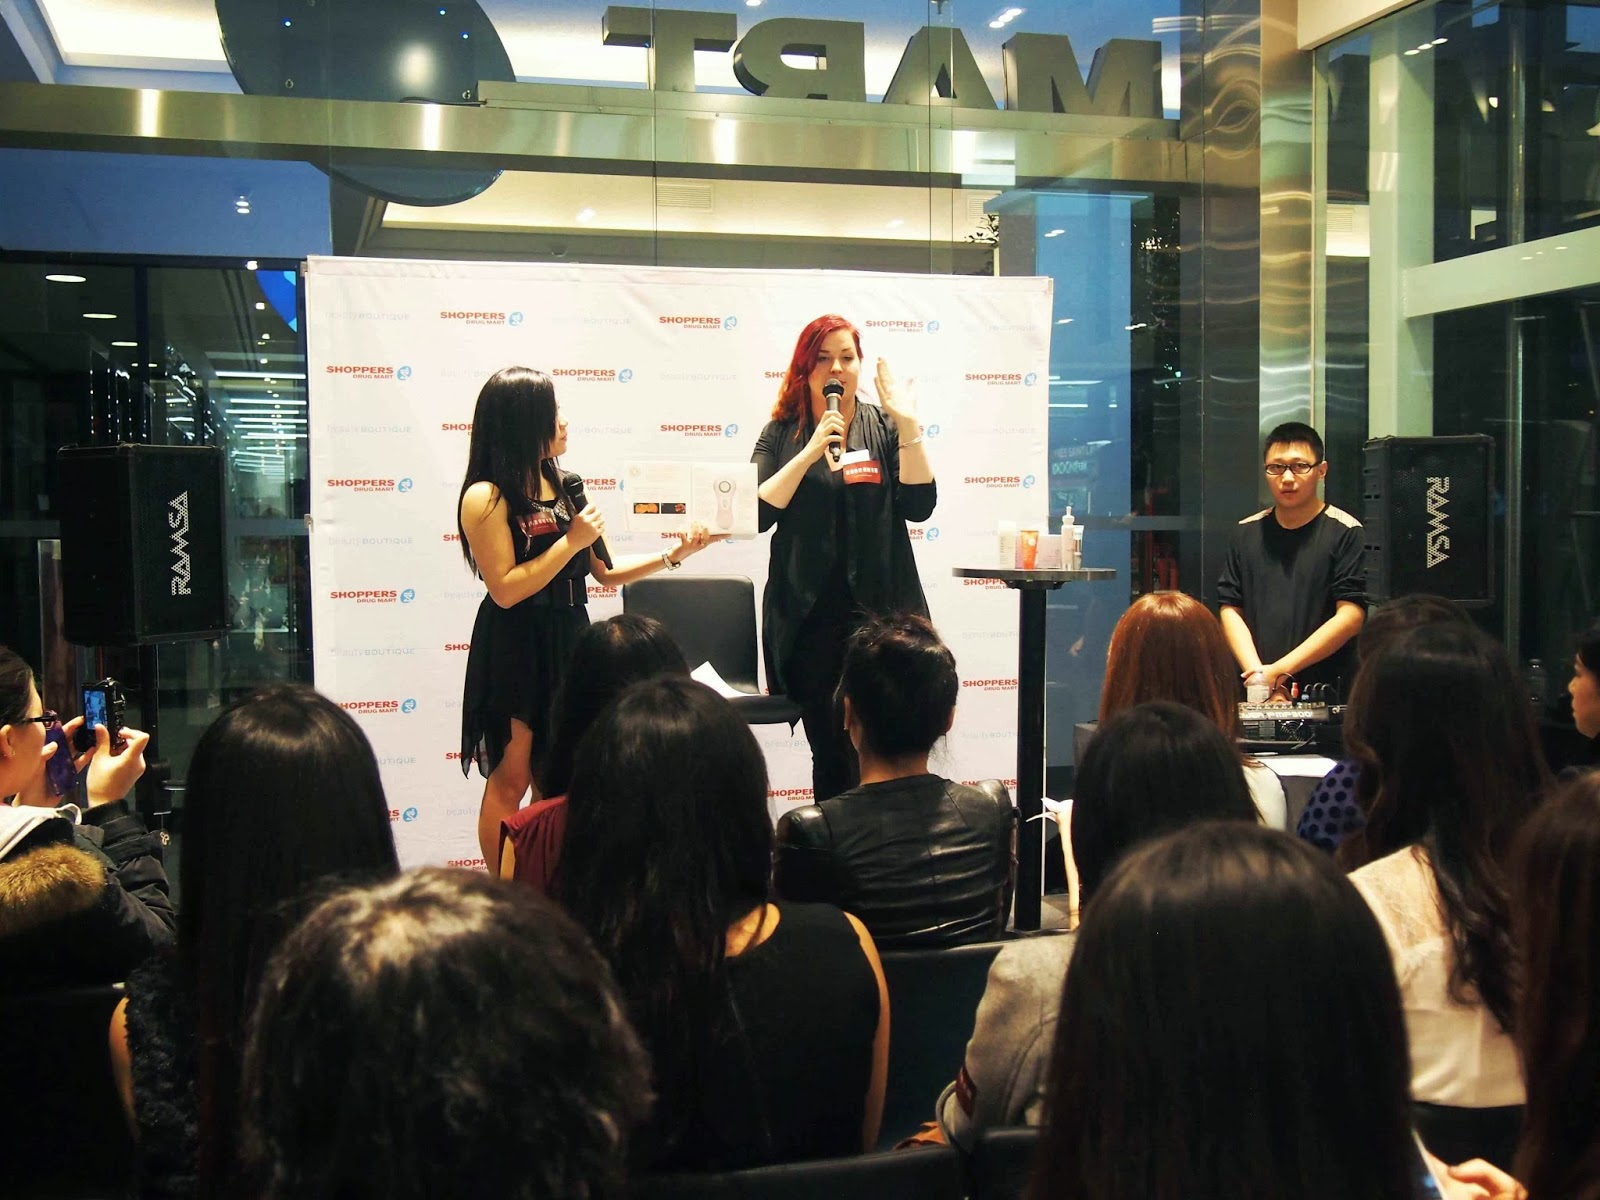 Huang Of A1 Chinese Radio Mc The Evening Kicked Off Event And Was Shortly Joined By Two Beauty Advisors From Pers Mart Sarah Loida